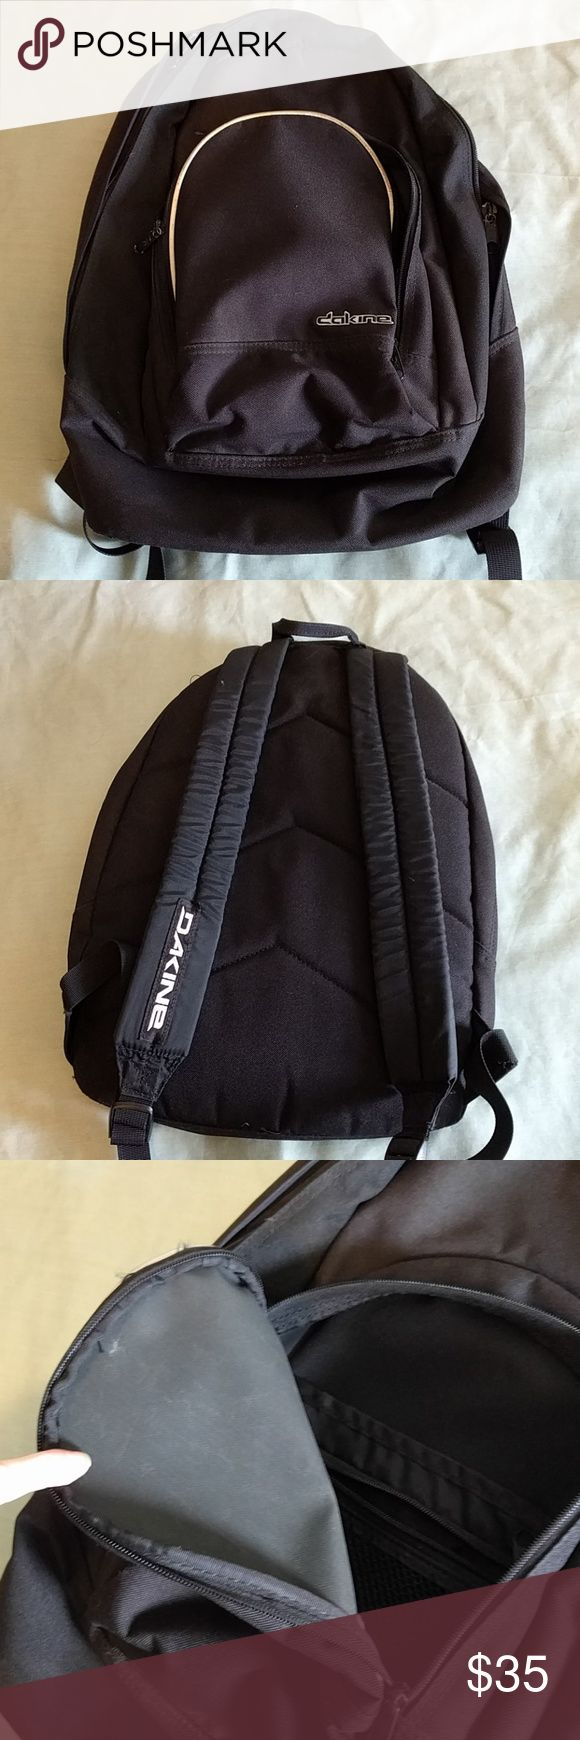 Dakine Little Black Backpack 12x17 backpack. GUC, but the zippers are corroded stuck from being on the water a lot. Plenty of life left of you can fix it! The smaller pocket zippers are fine. Silver reflective piping in the front. Dakine Bags Backpacks